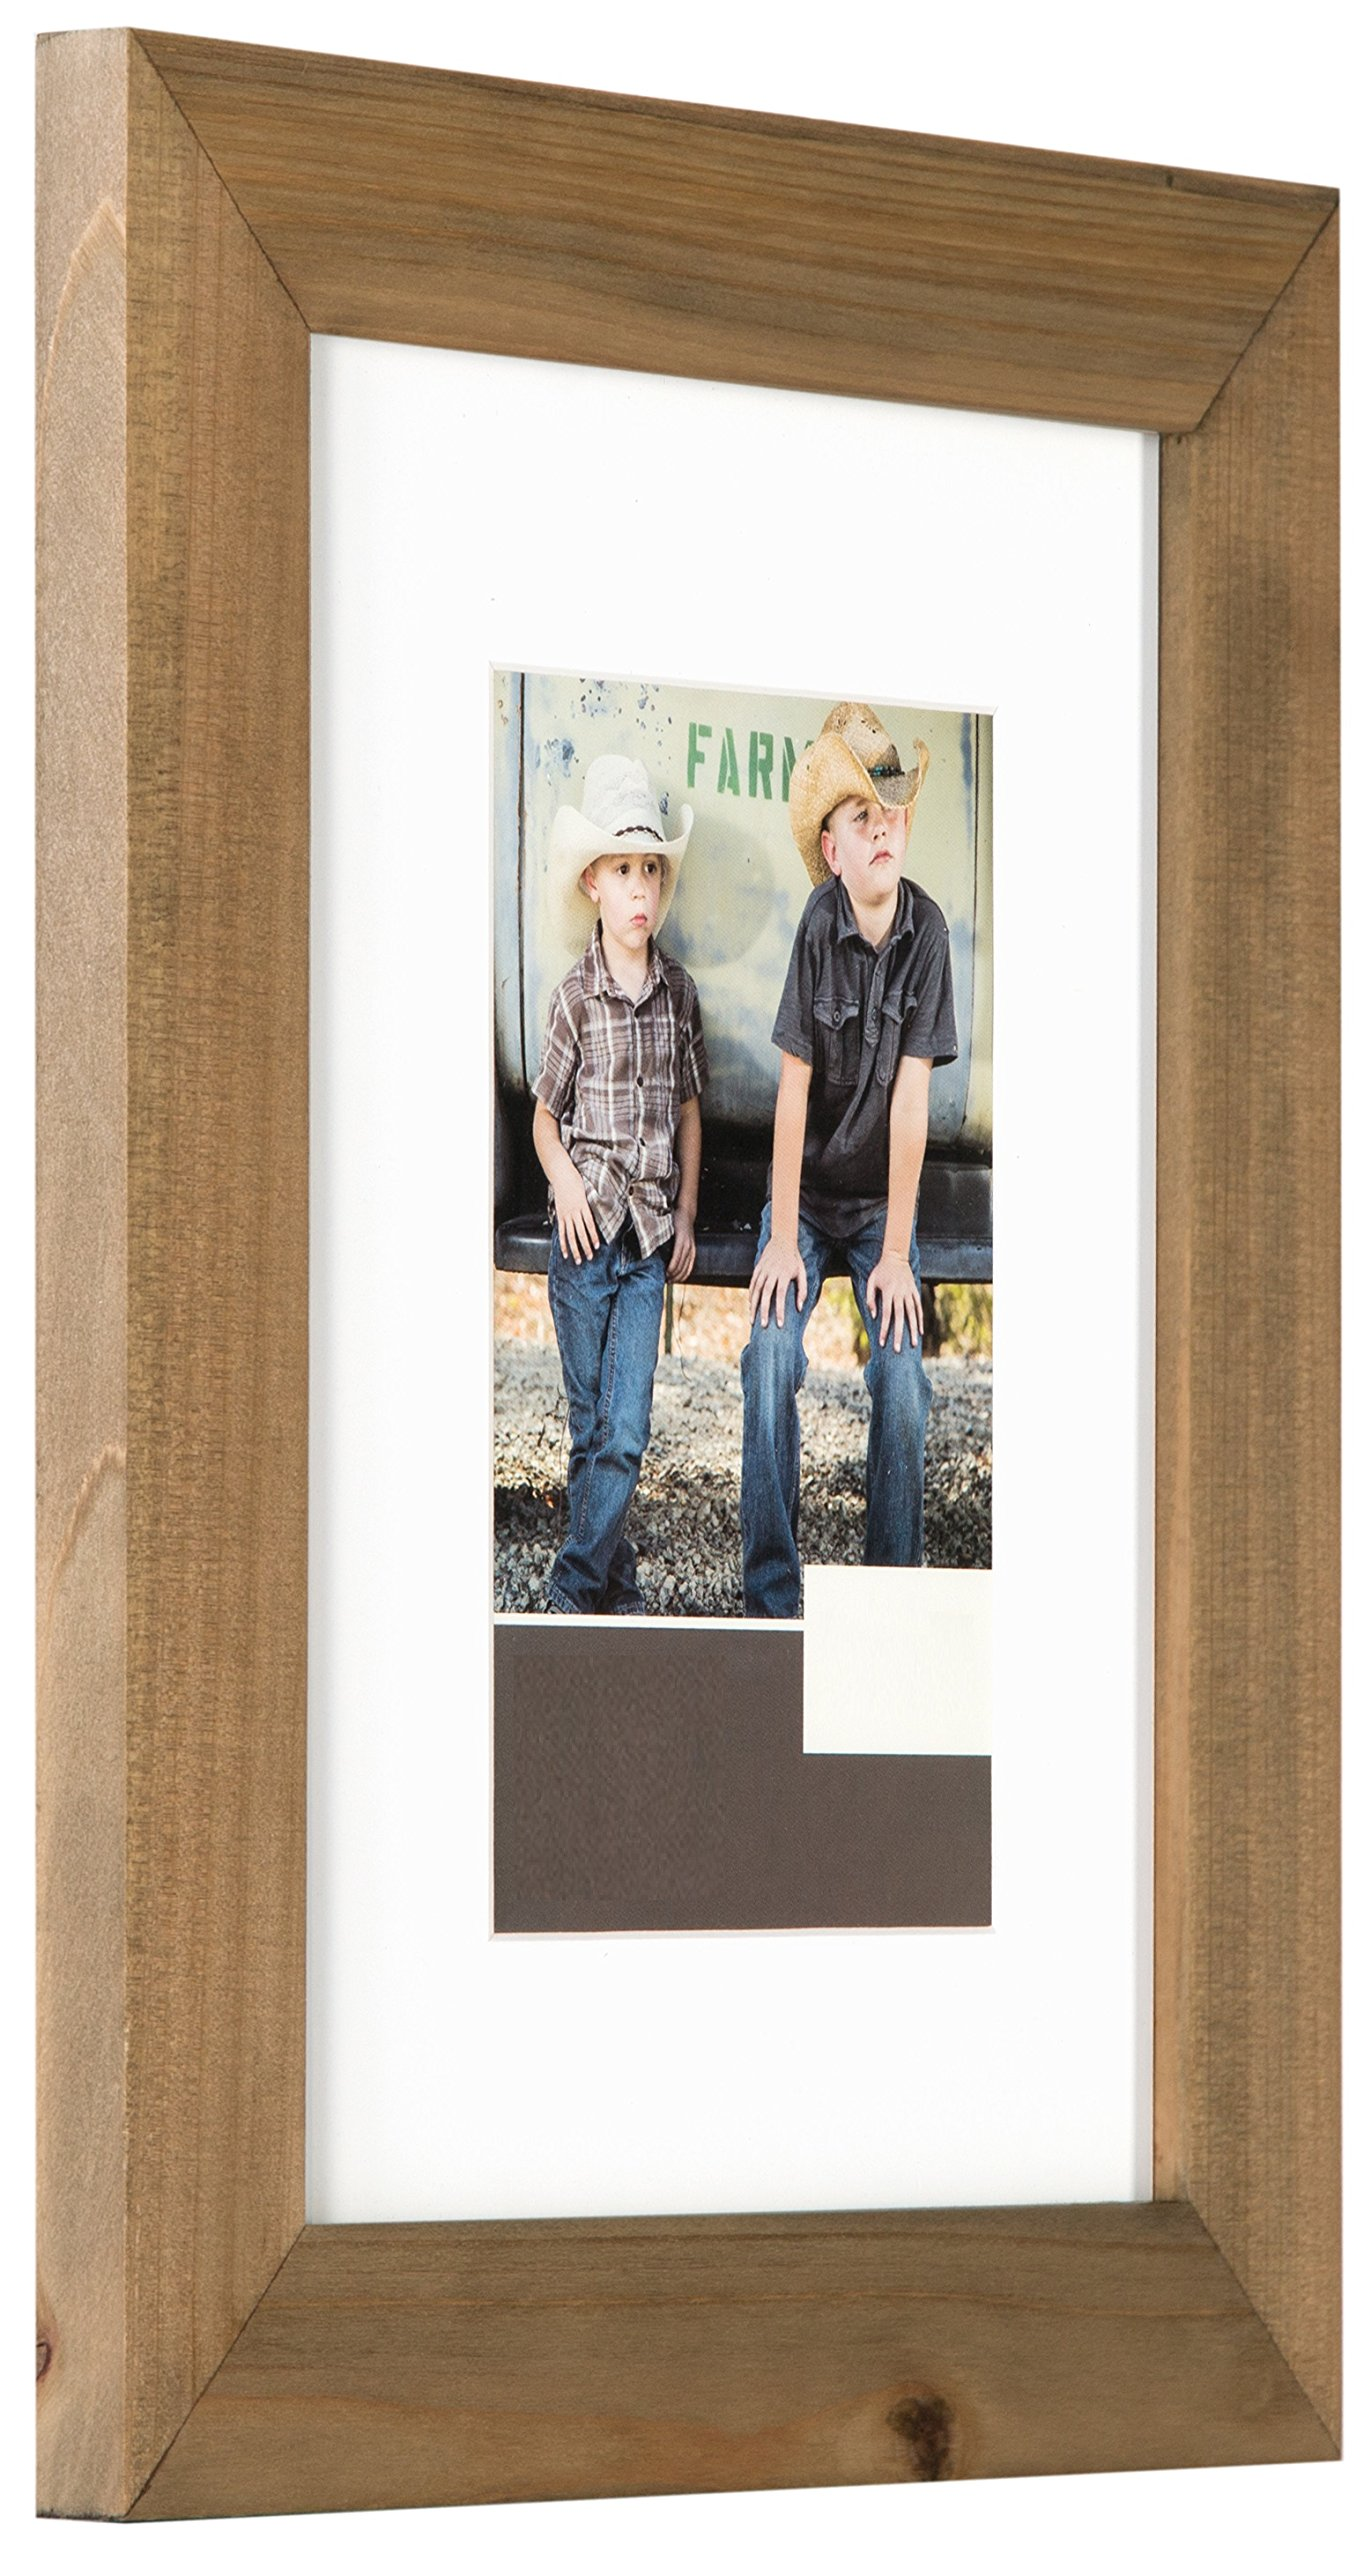 Gallery Solutions 11x14 Flat Ash Wood Wall Picture Frame with White Mat For 8x10 Image by Gallery Solutions (Image #3)